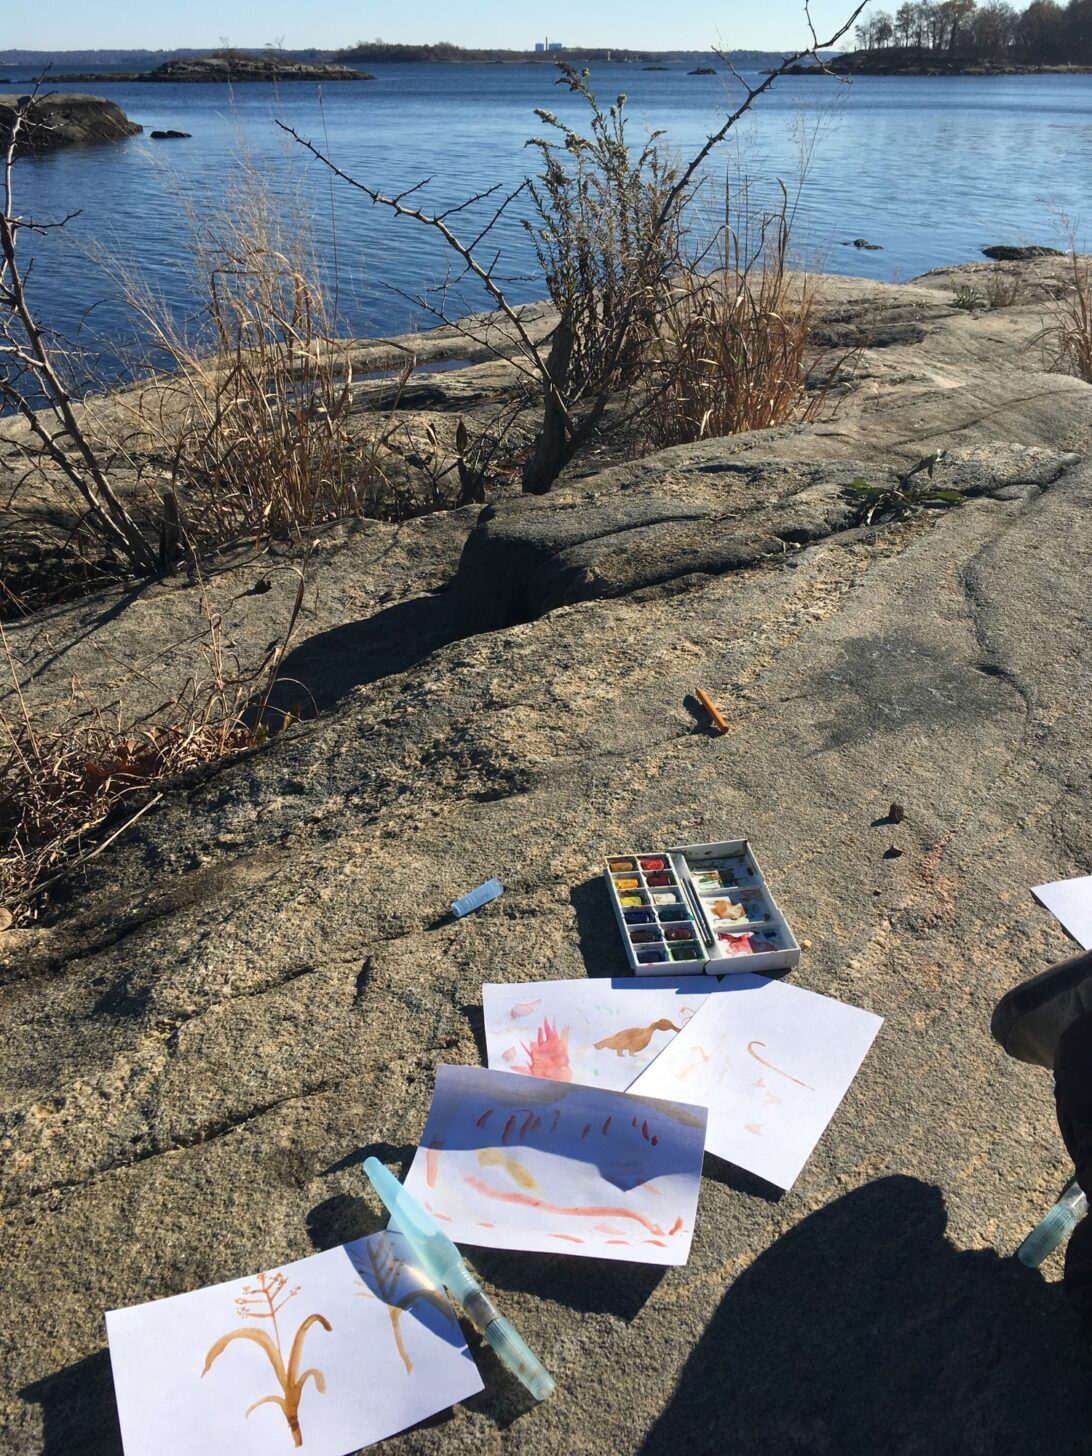 a travel watercolor kit and some paintings next to a lake